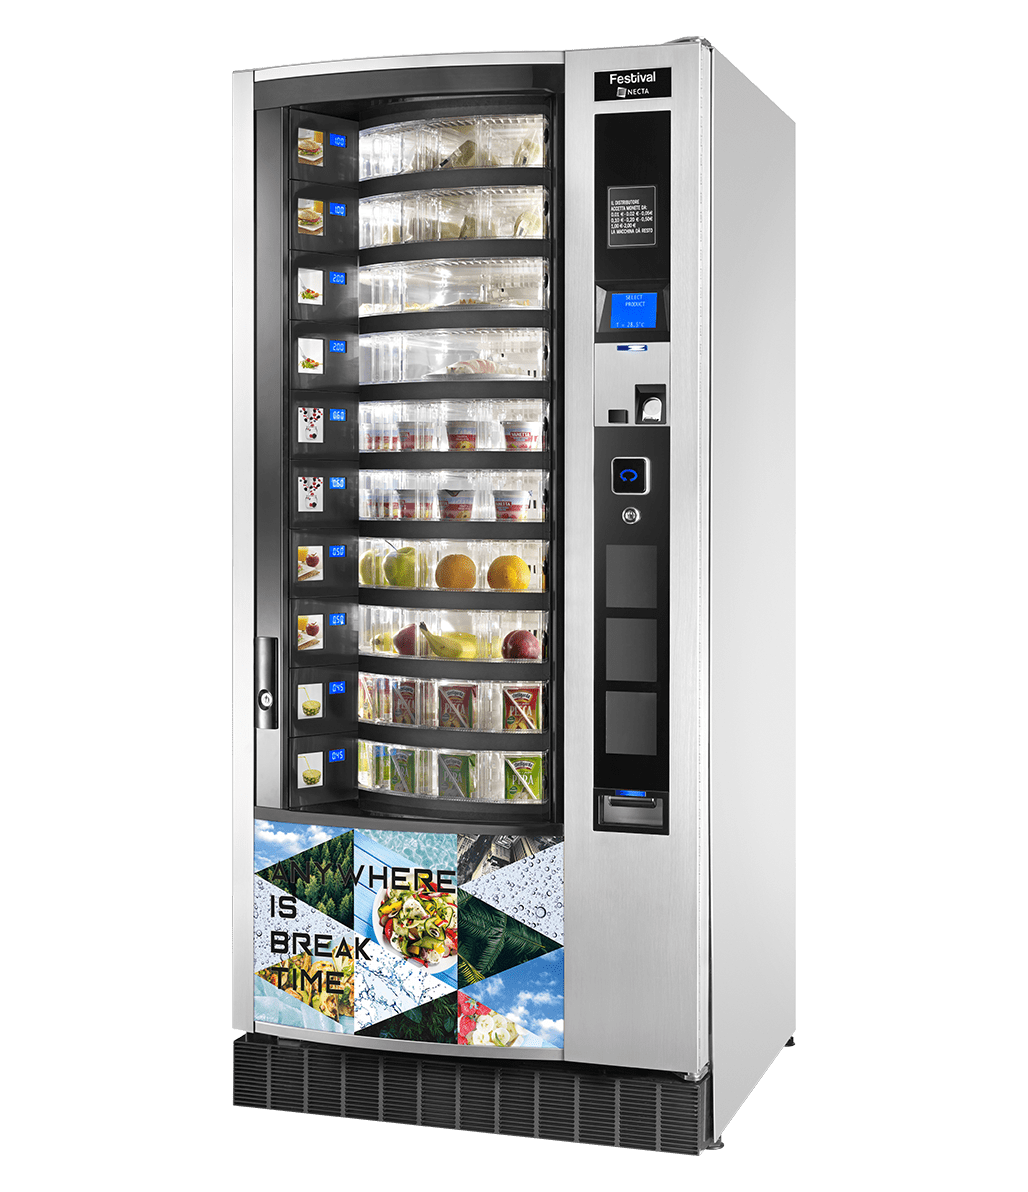 Festival - Snack, Food, Cans and Bottle Vending Machine